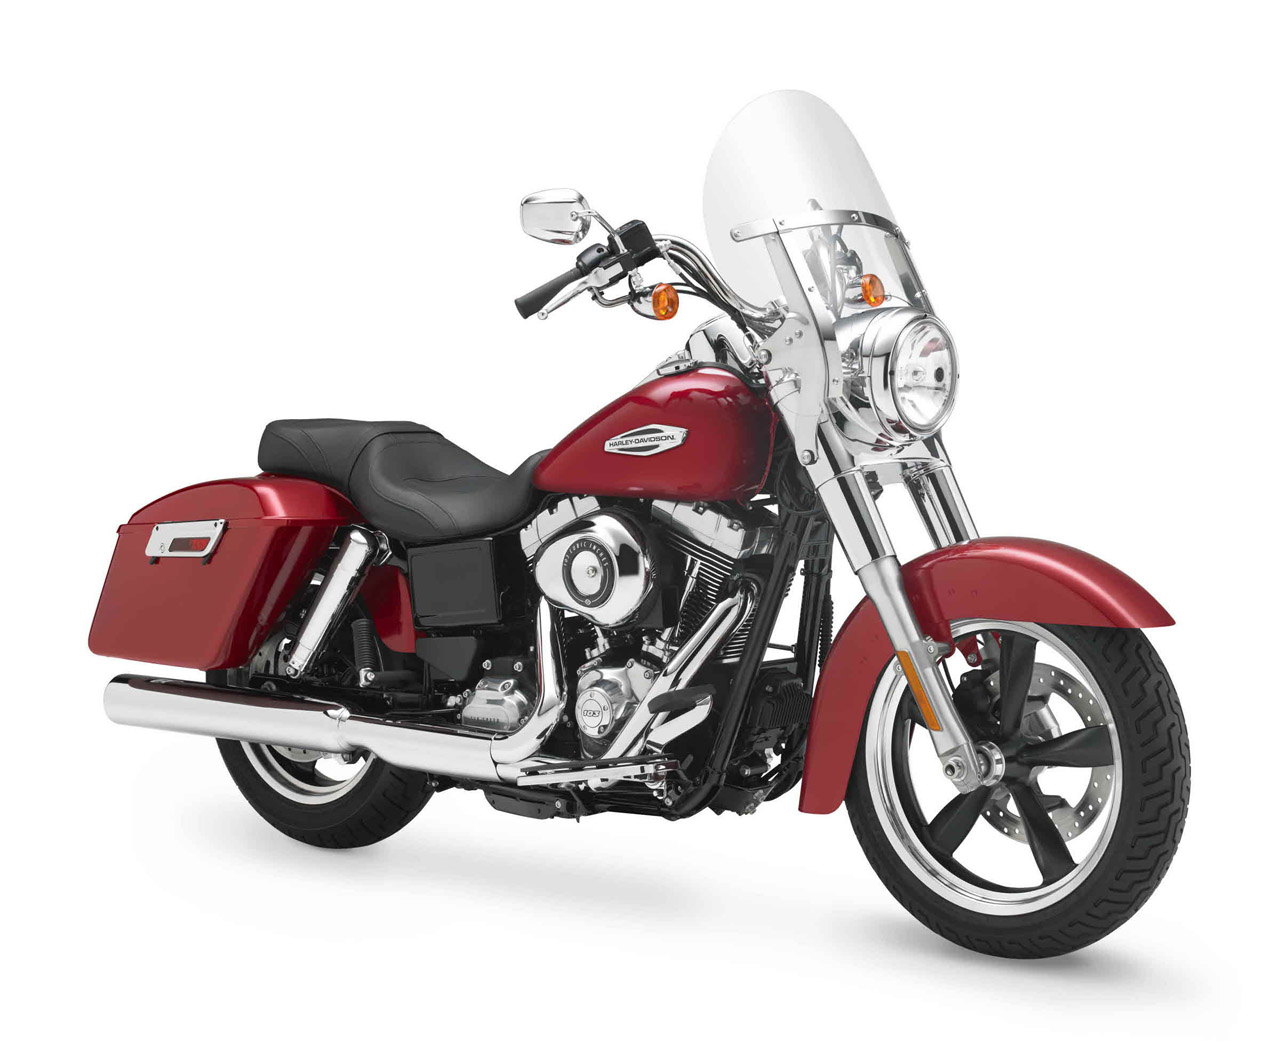 2012 Harley Davidson models 4 New models from Harley – Davison to be unveiled in 2012